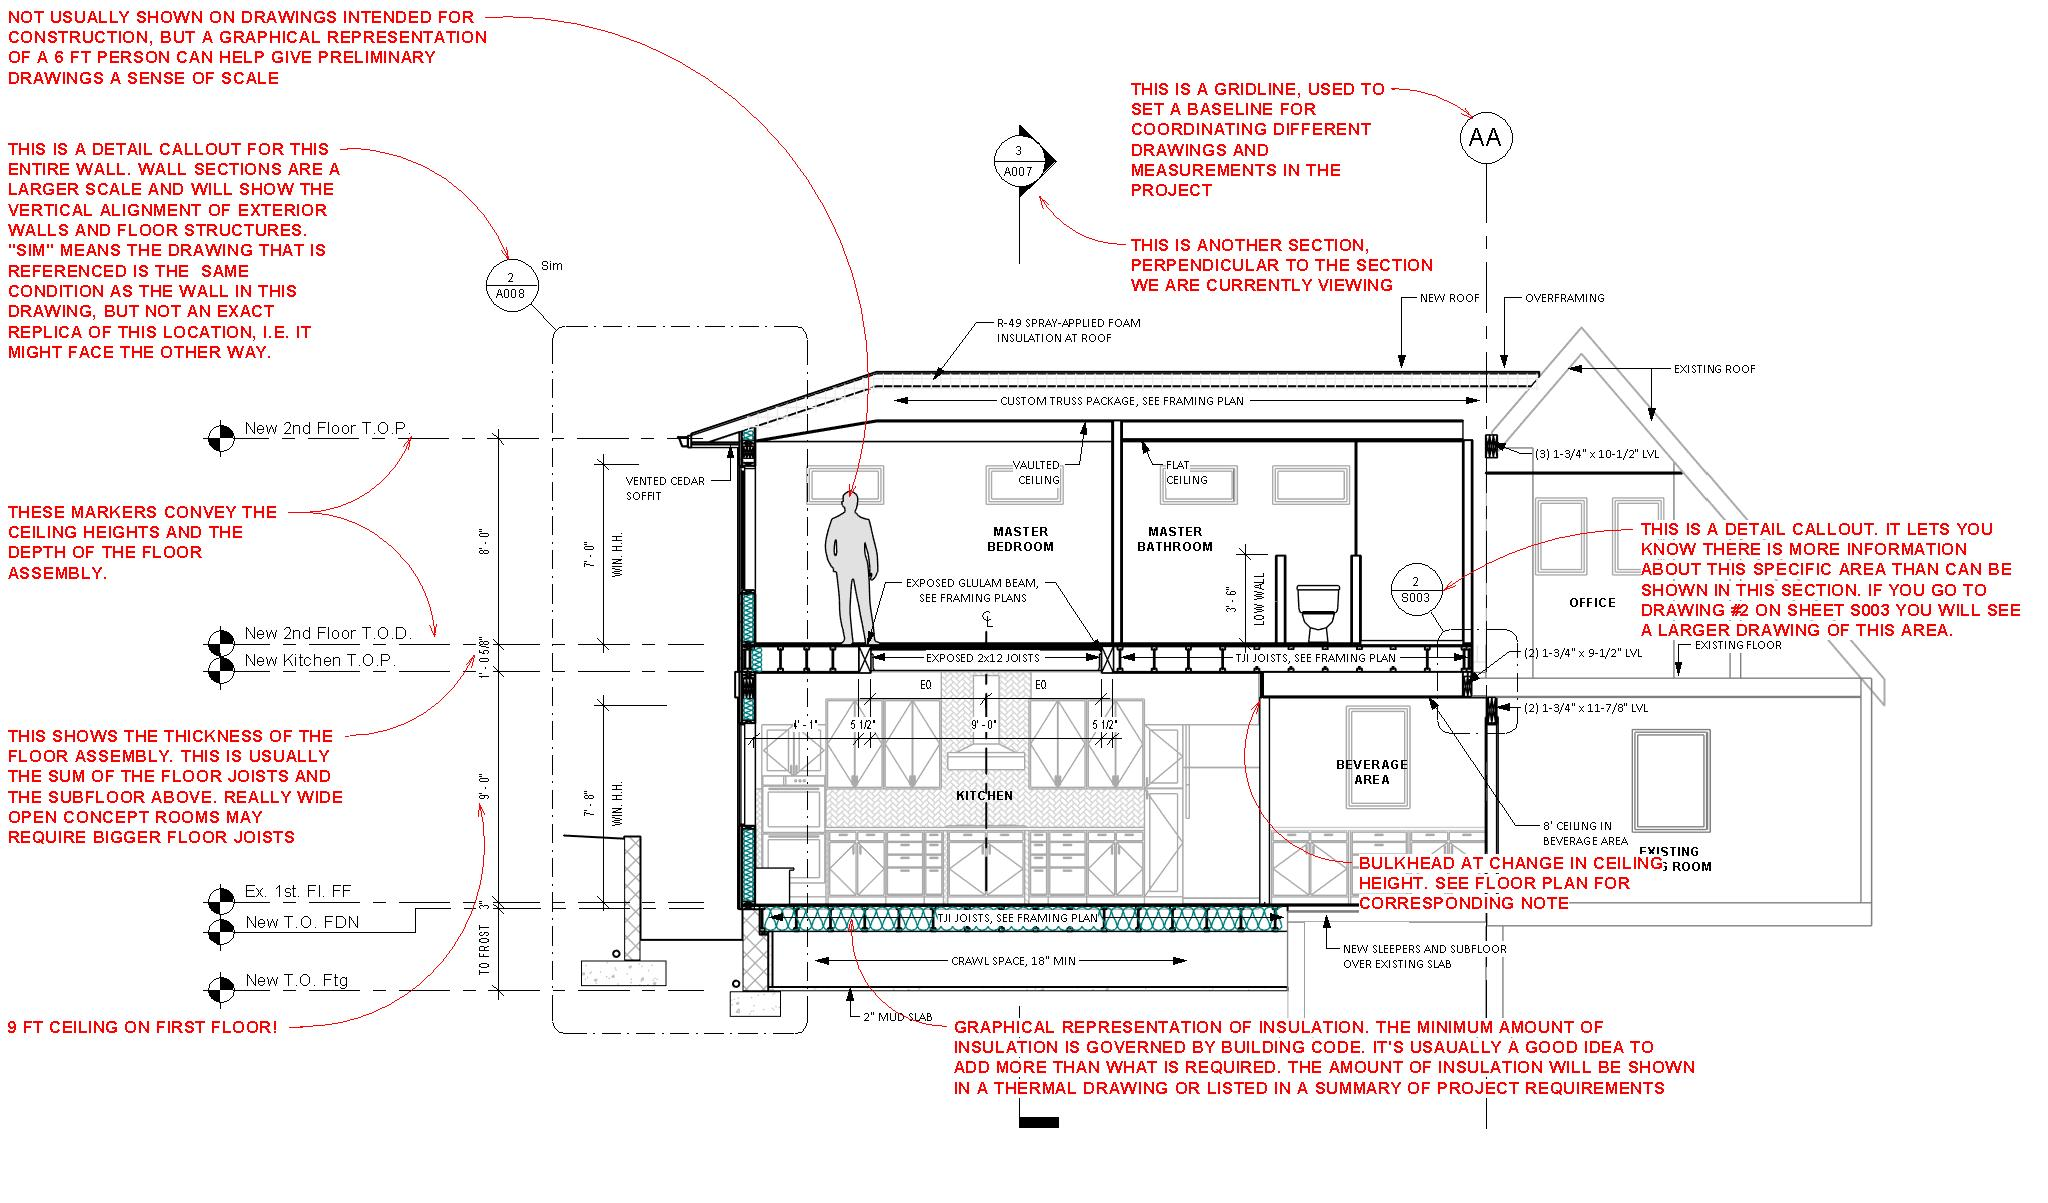 architecture section diagram rj11 wiring how to read sections mangan group architects residential and